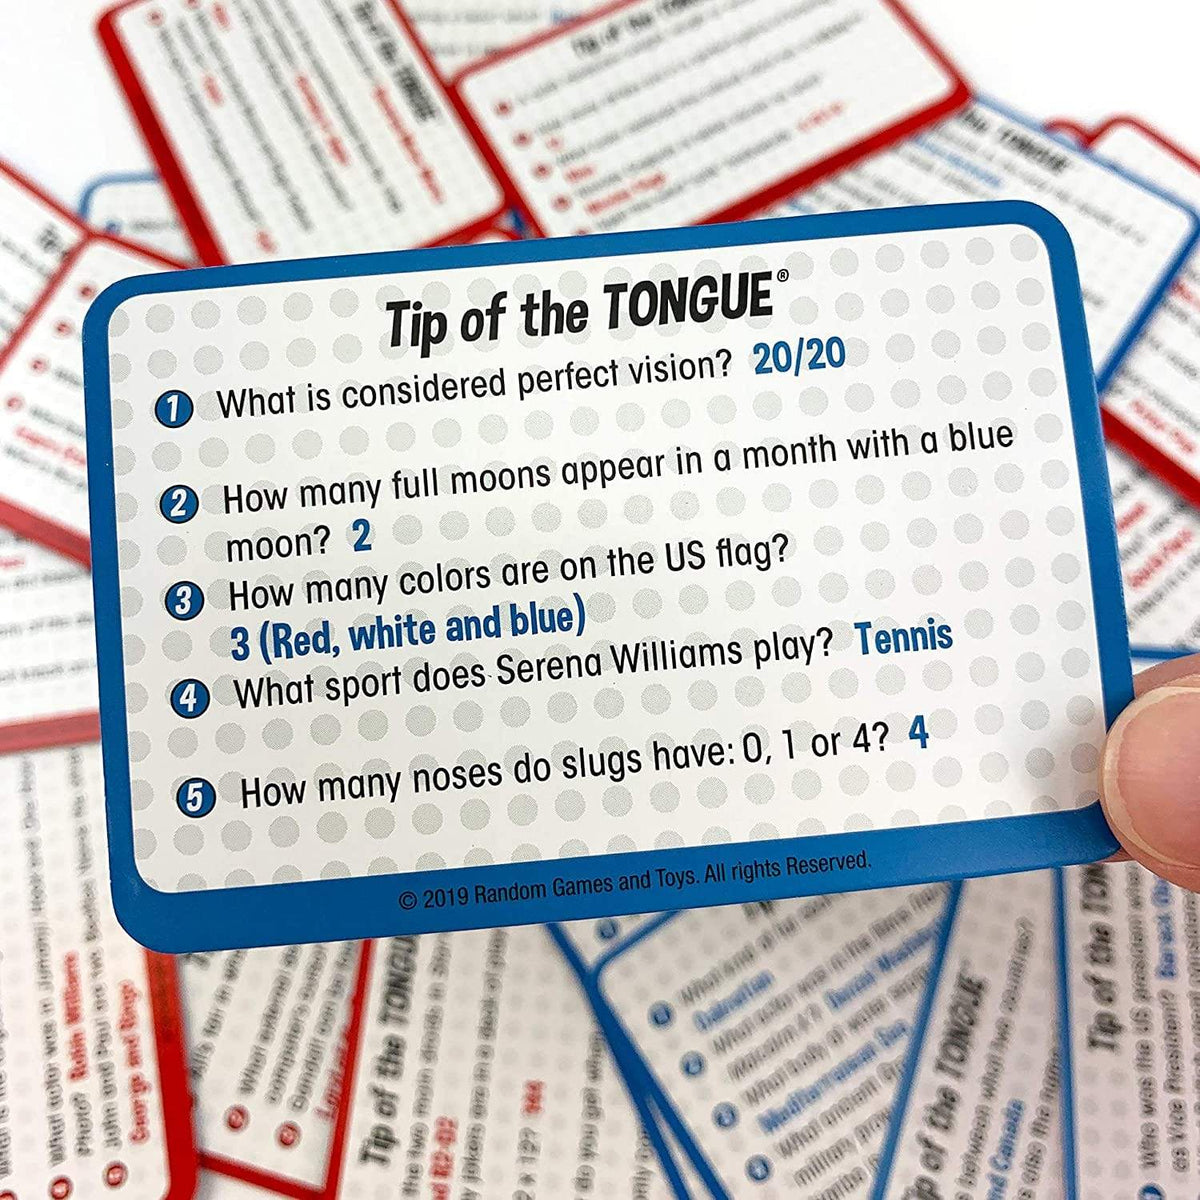 Tip of the Tongue University Games Board Games